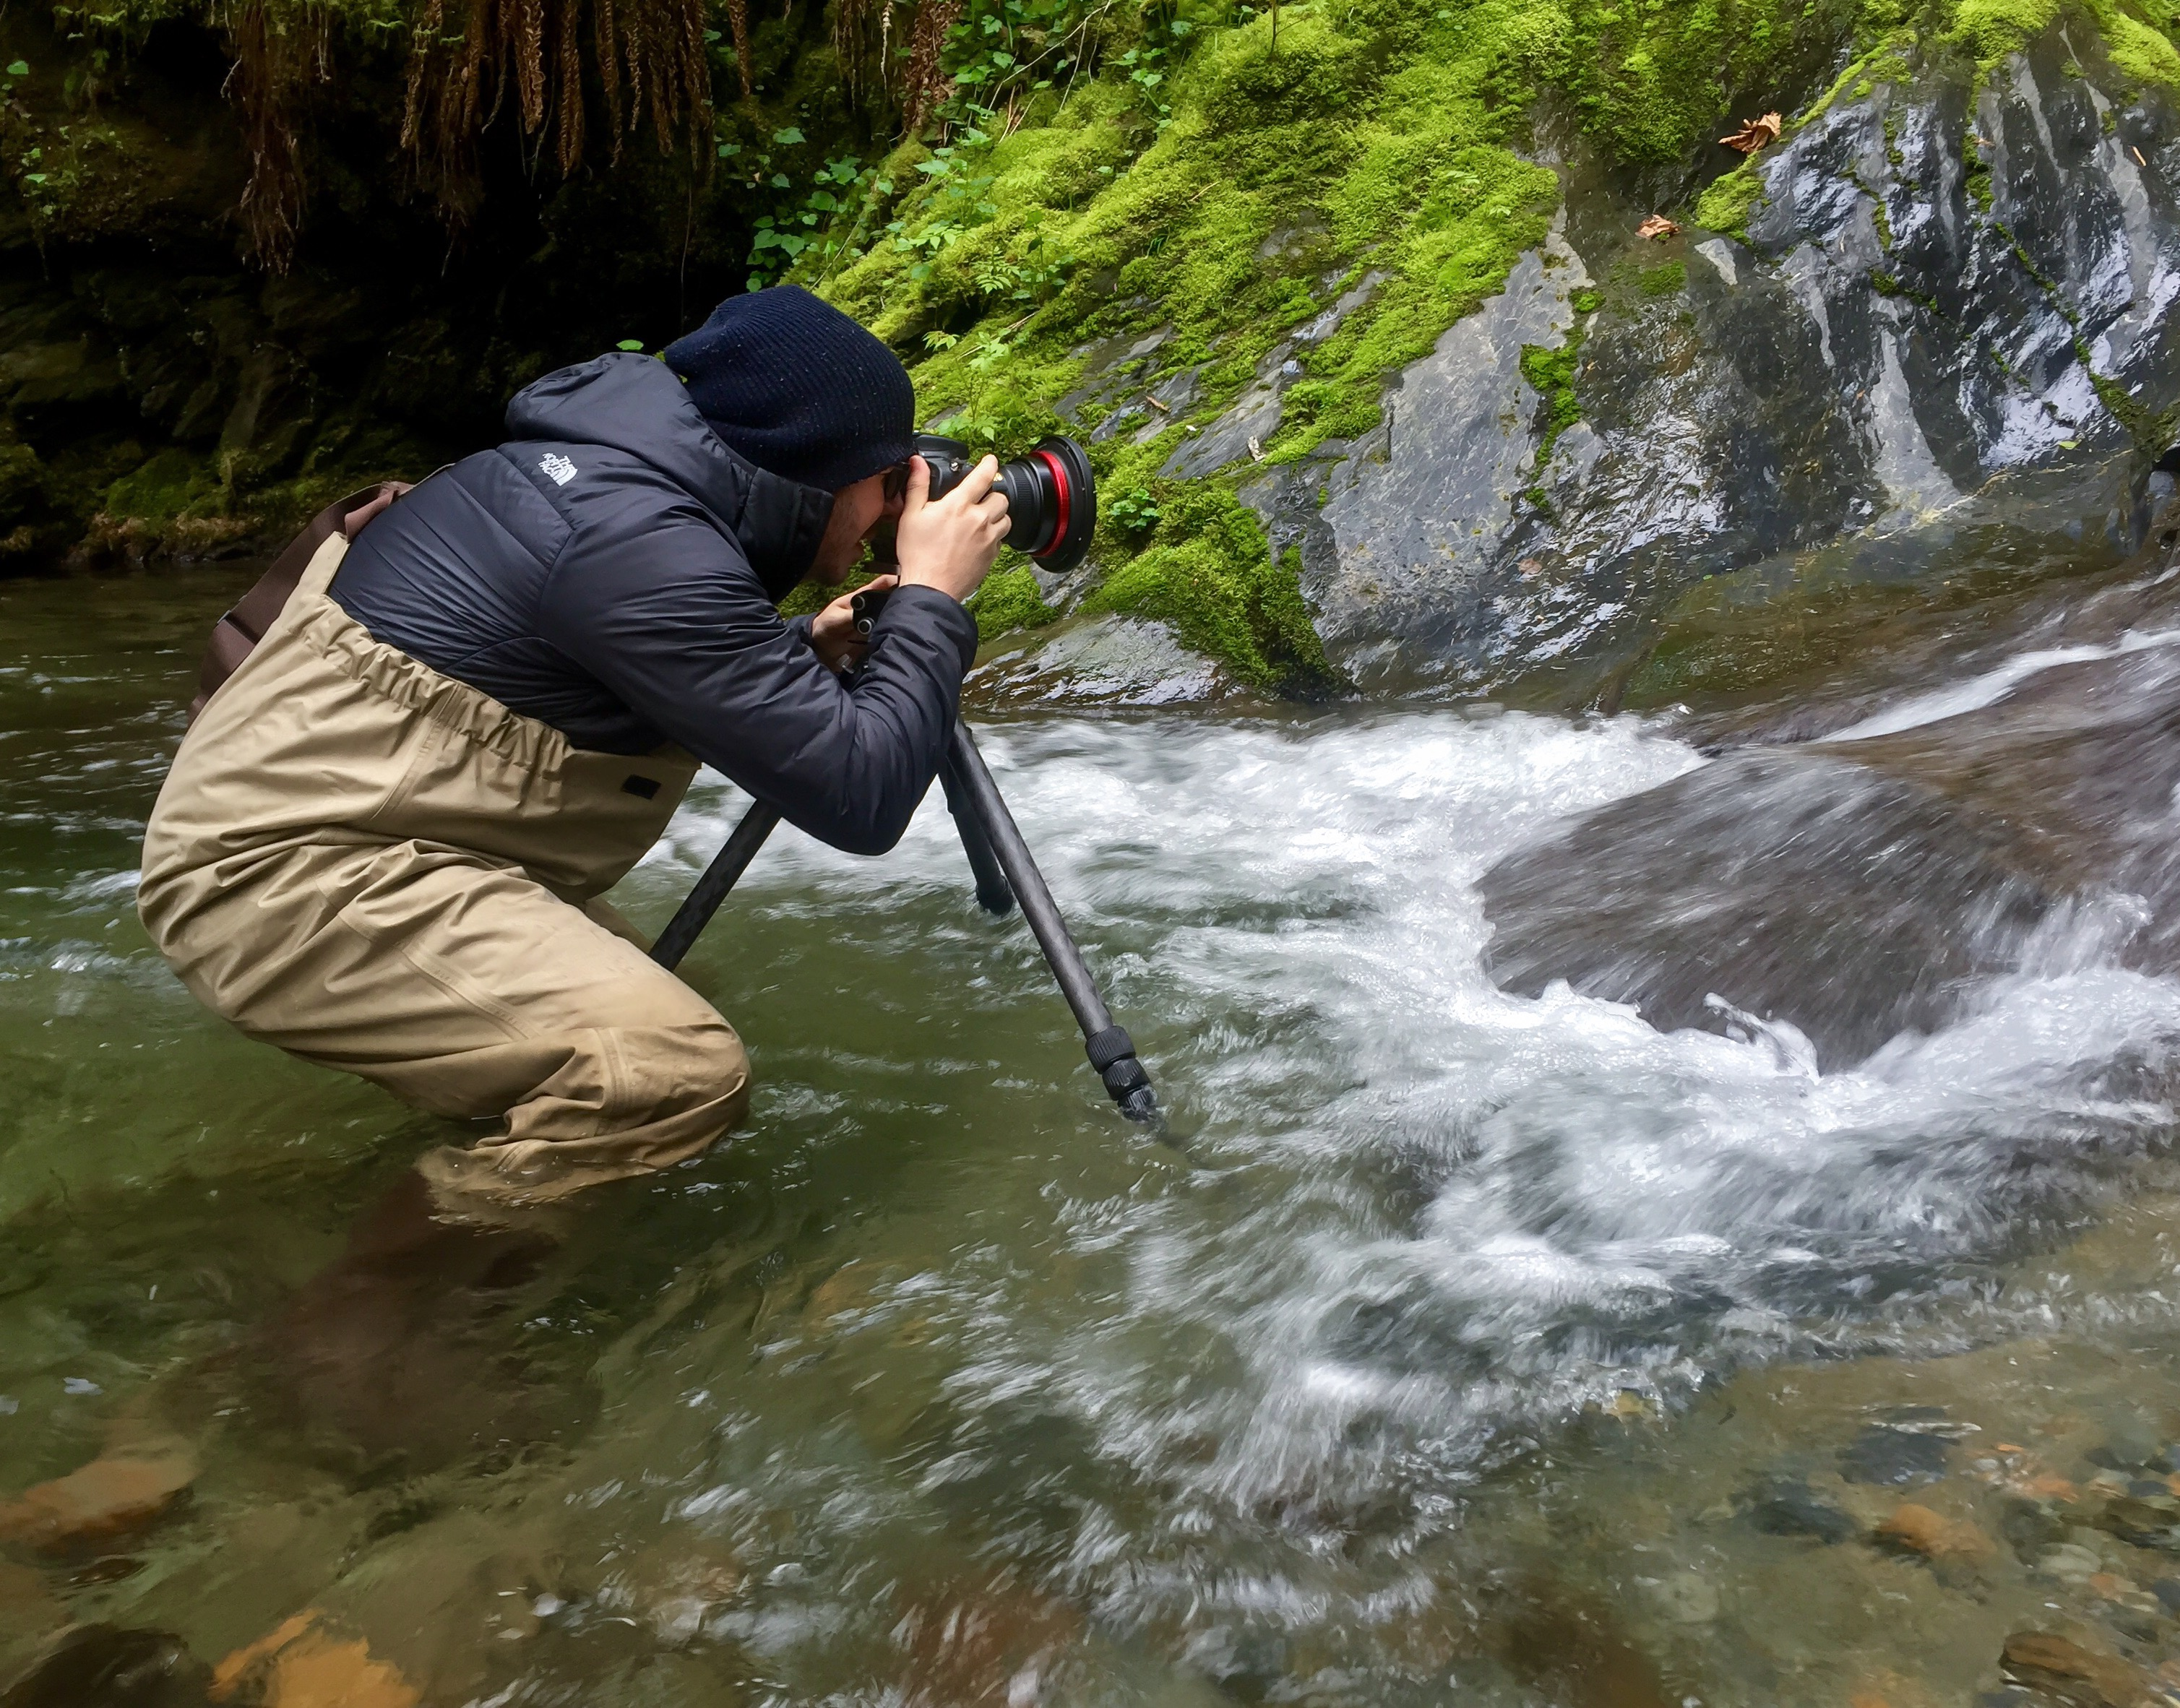 Trying to stay warm in a snow-melt creek while photographing a waterfall.